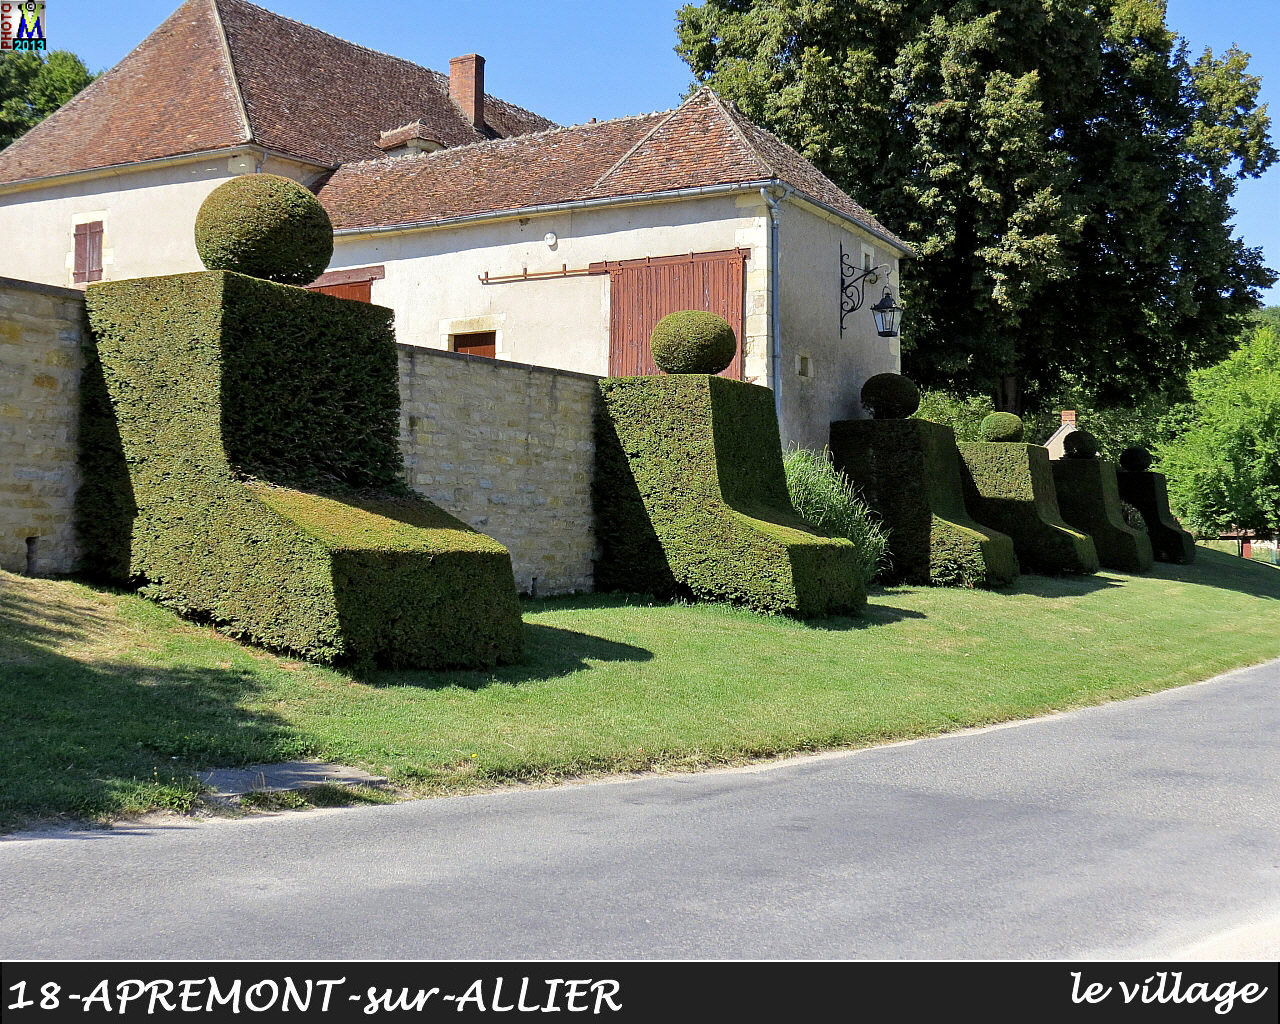 18APREMONT-ALLIER_village_142.jpg